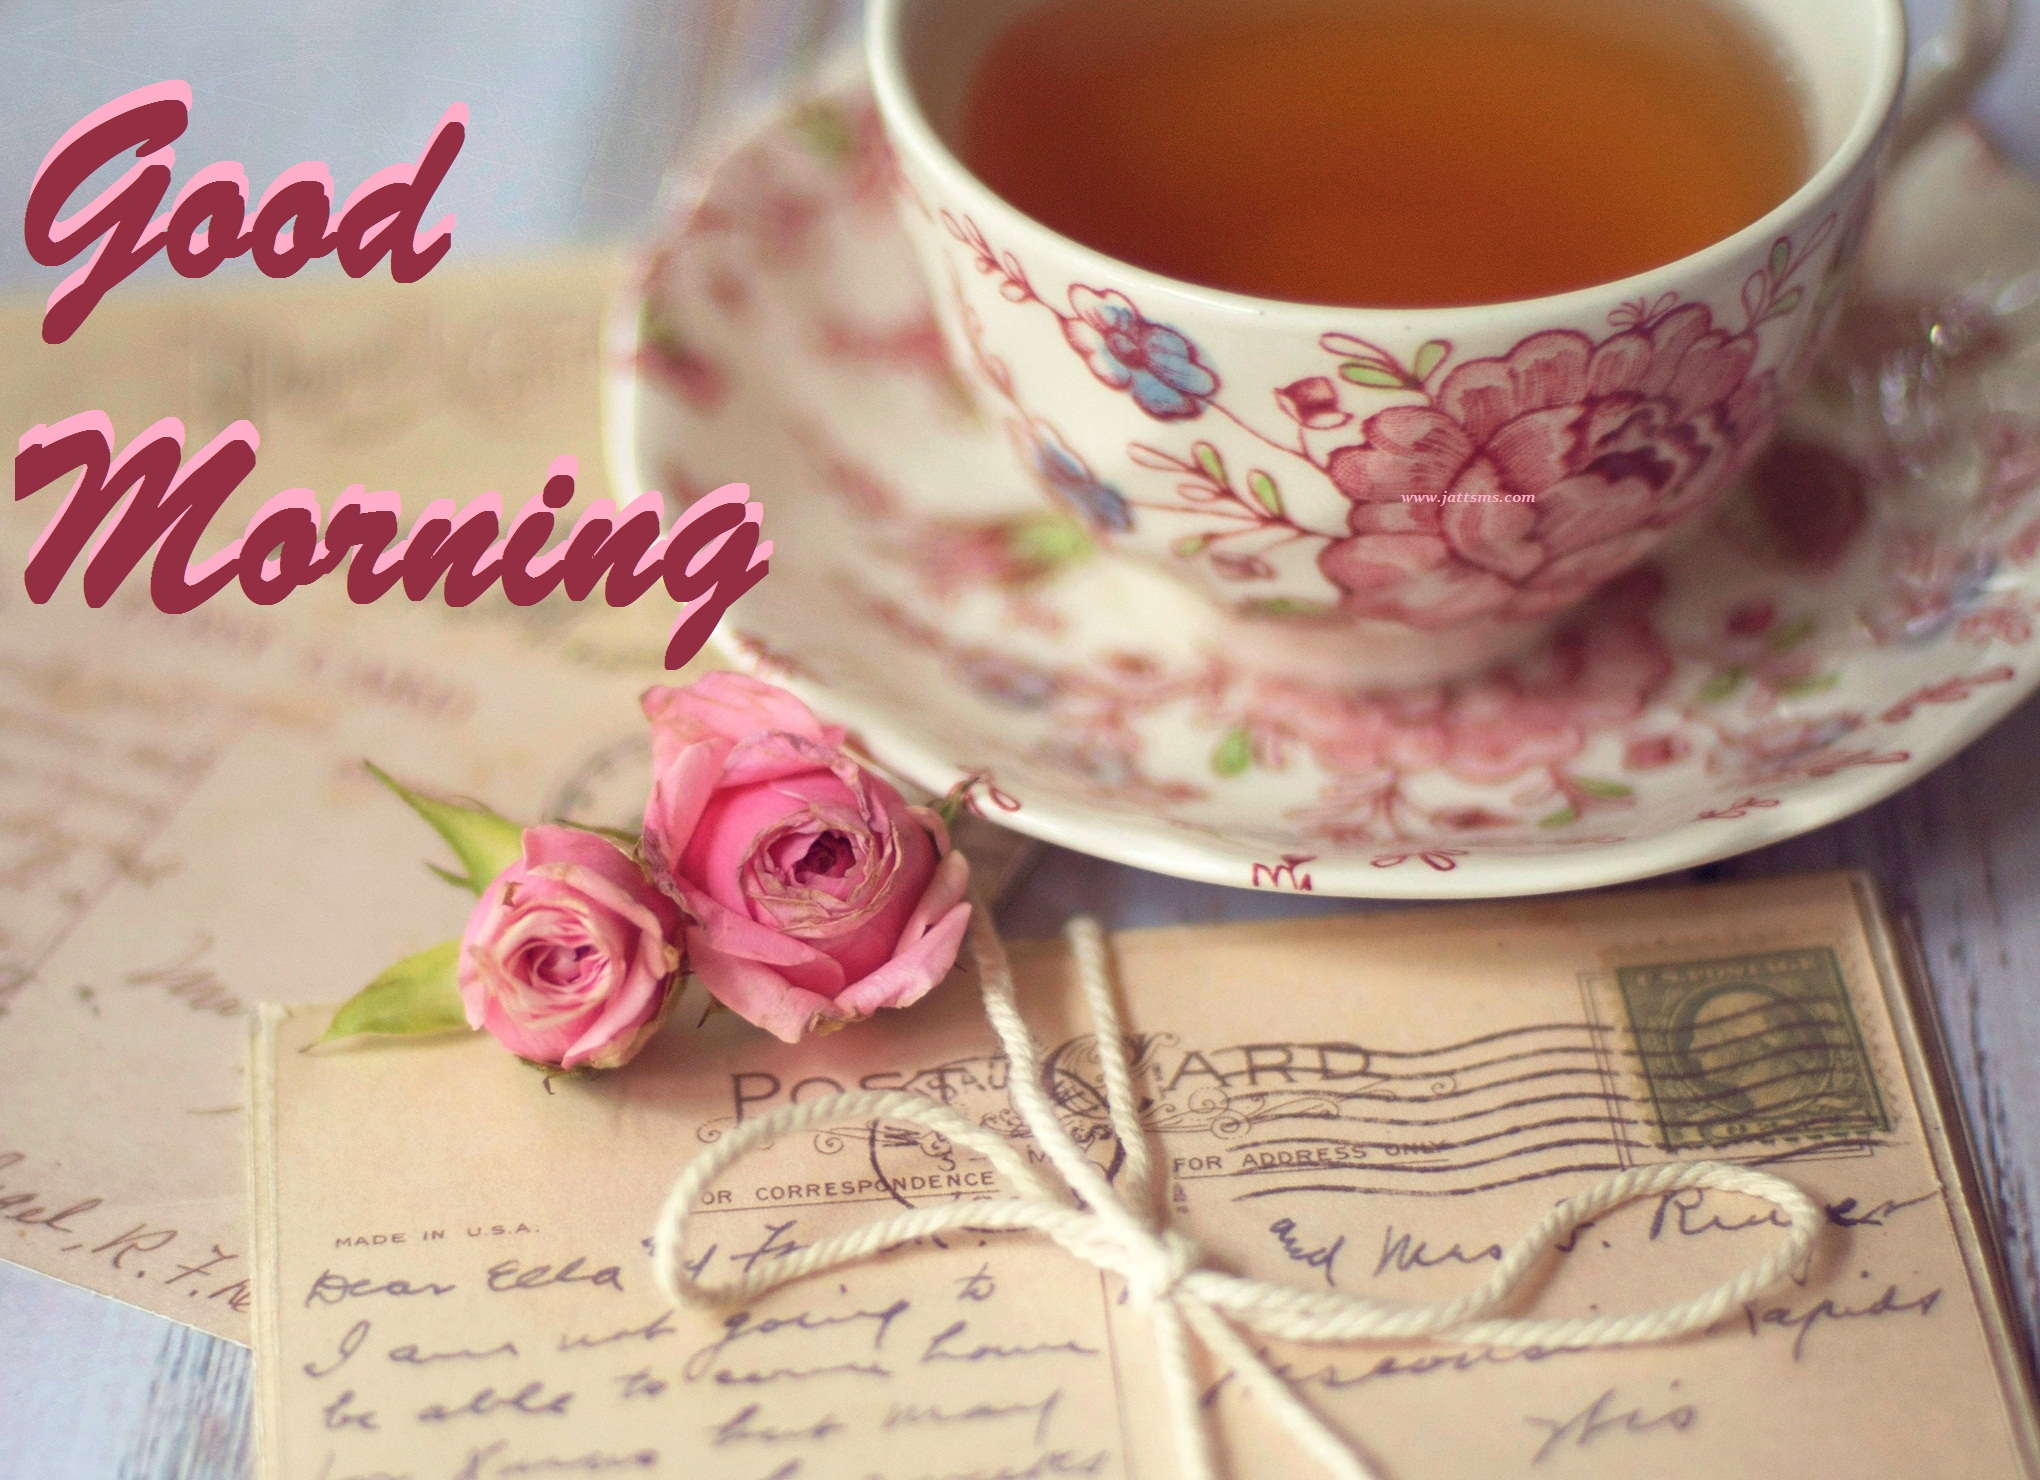 Romantic Good Morning Quotes For Him Quotesgram: Romantic Good Morning Coffee Quotes. QuotesGram